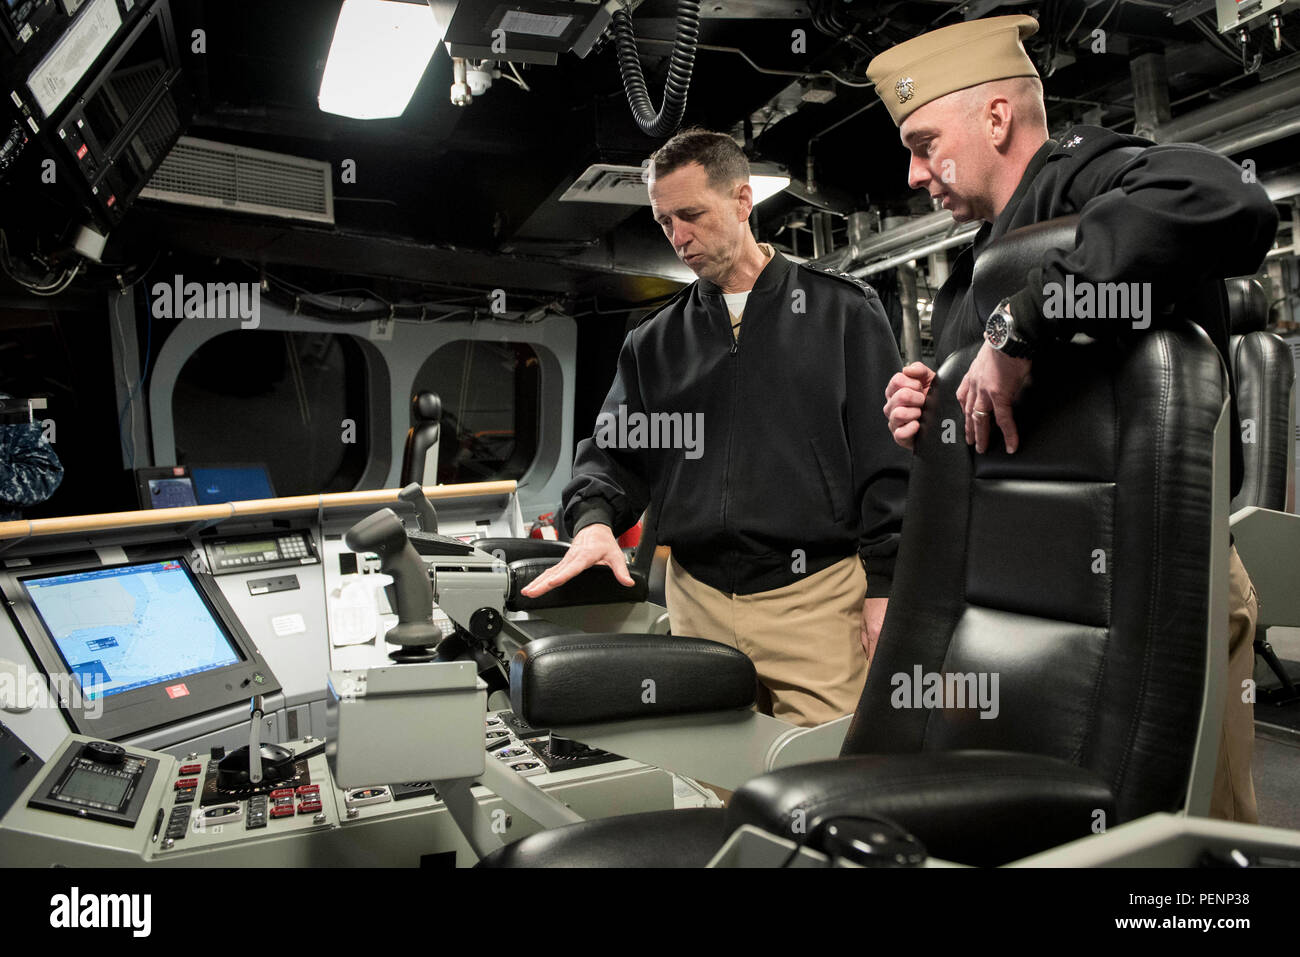 160106-N-AT895-341 PENSACOLA, Fla. (Jan. 6, 2016) Chief of Naval Operations (CNO) Adm. John Richardson tours the littoral combat ship USS Independence (LCS 2). LCS 2 is conducting operational evaluation and testing of the mine countermeasures mission package while berthed at Naval Air Station (NAS) Pensacola. Richardson and Master Chief Petty Officer of the Navy (MCPON) Mike Stevens received an overview of NAS Pensacola's aviation training centers and toured LCS 2. (U.S. Navy photo by Mass Communication Specialist 1st Class Nathan Laird/Released) Stock Photo